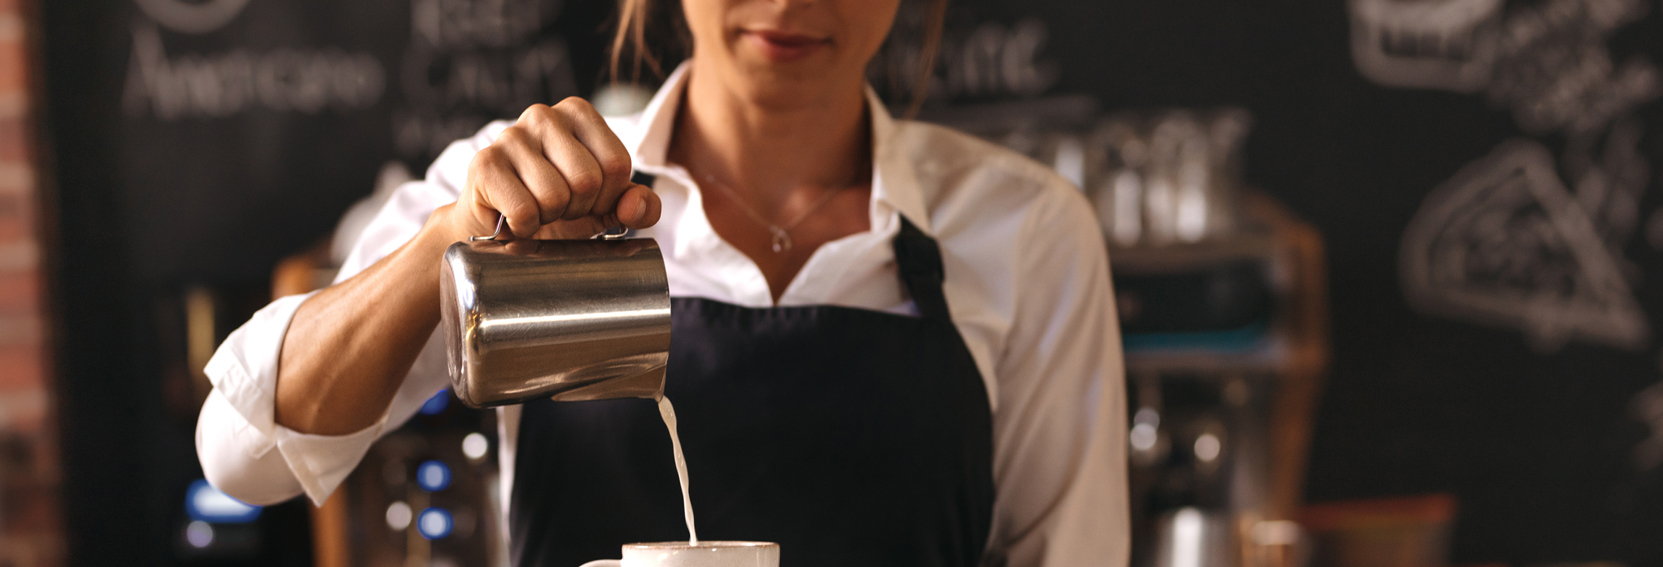 The cost of life insurance can be less than the cost of latte per day.